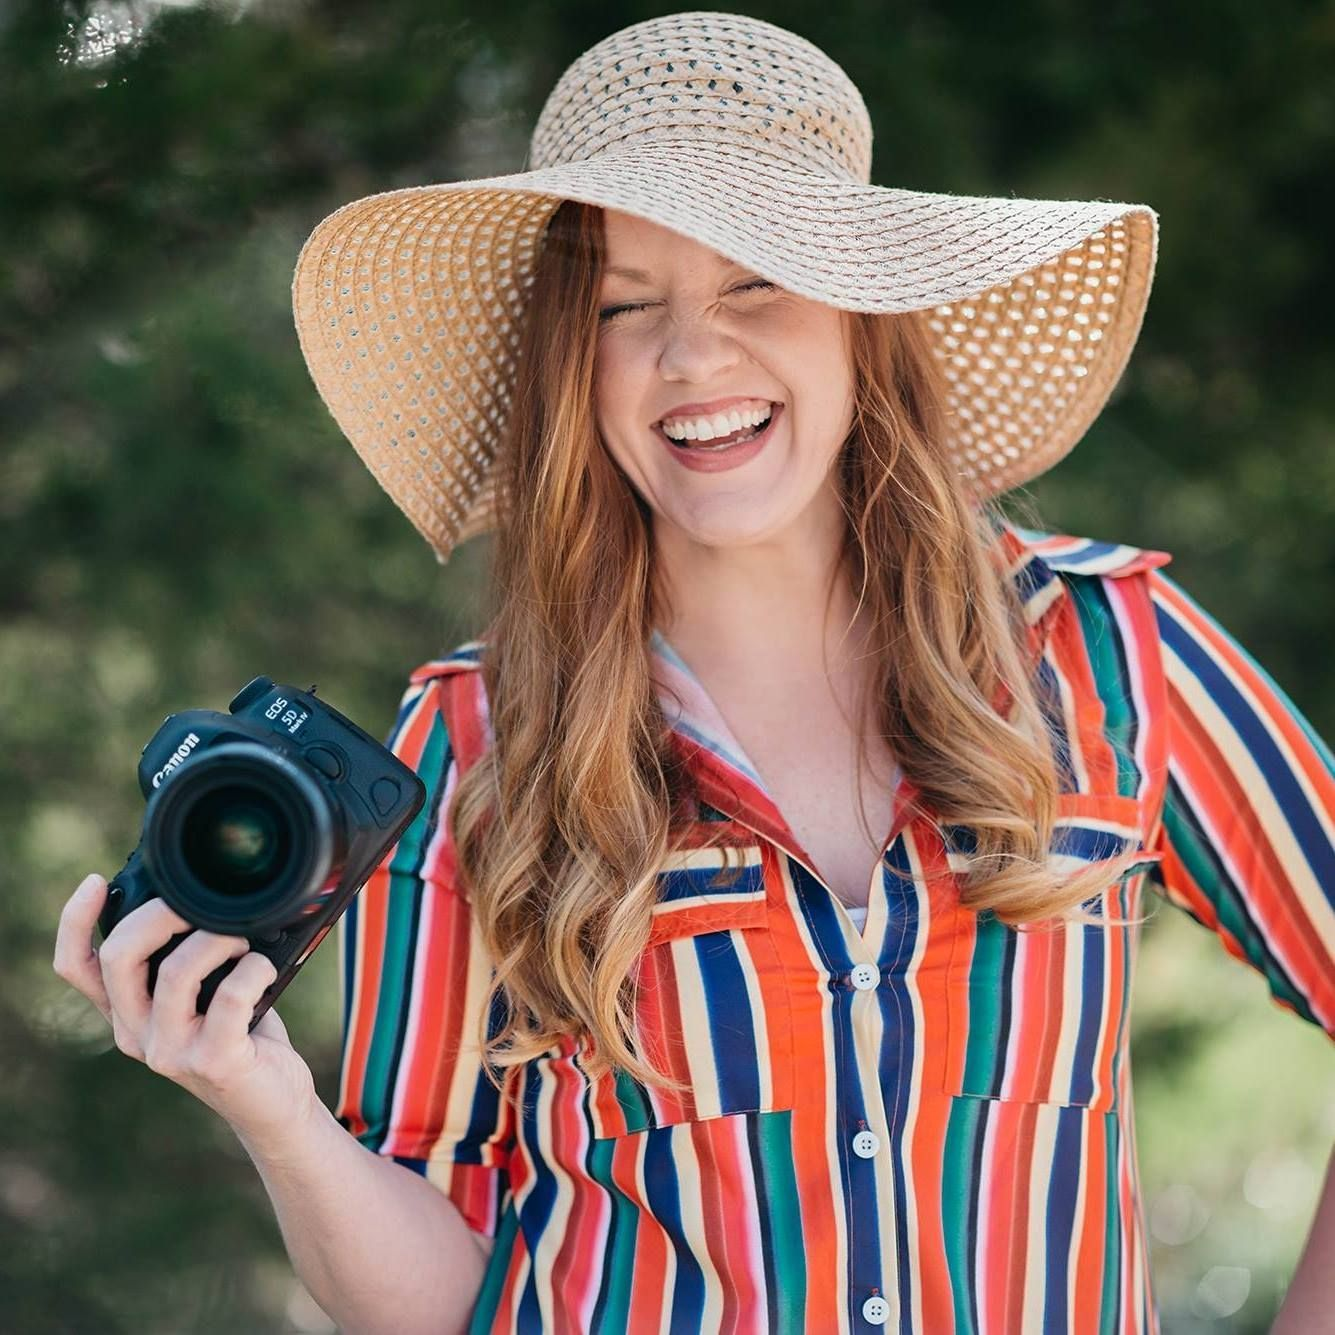 Female photographer, holding camera, floppy hat, stripe dress